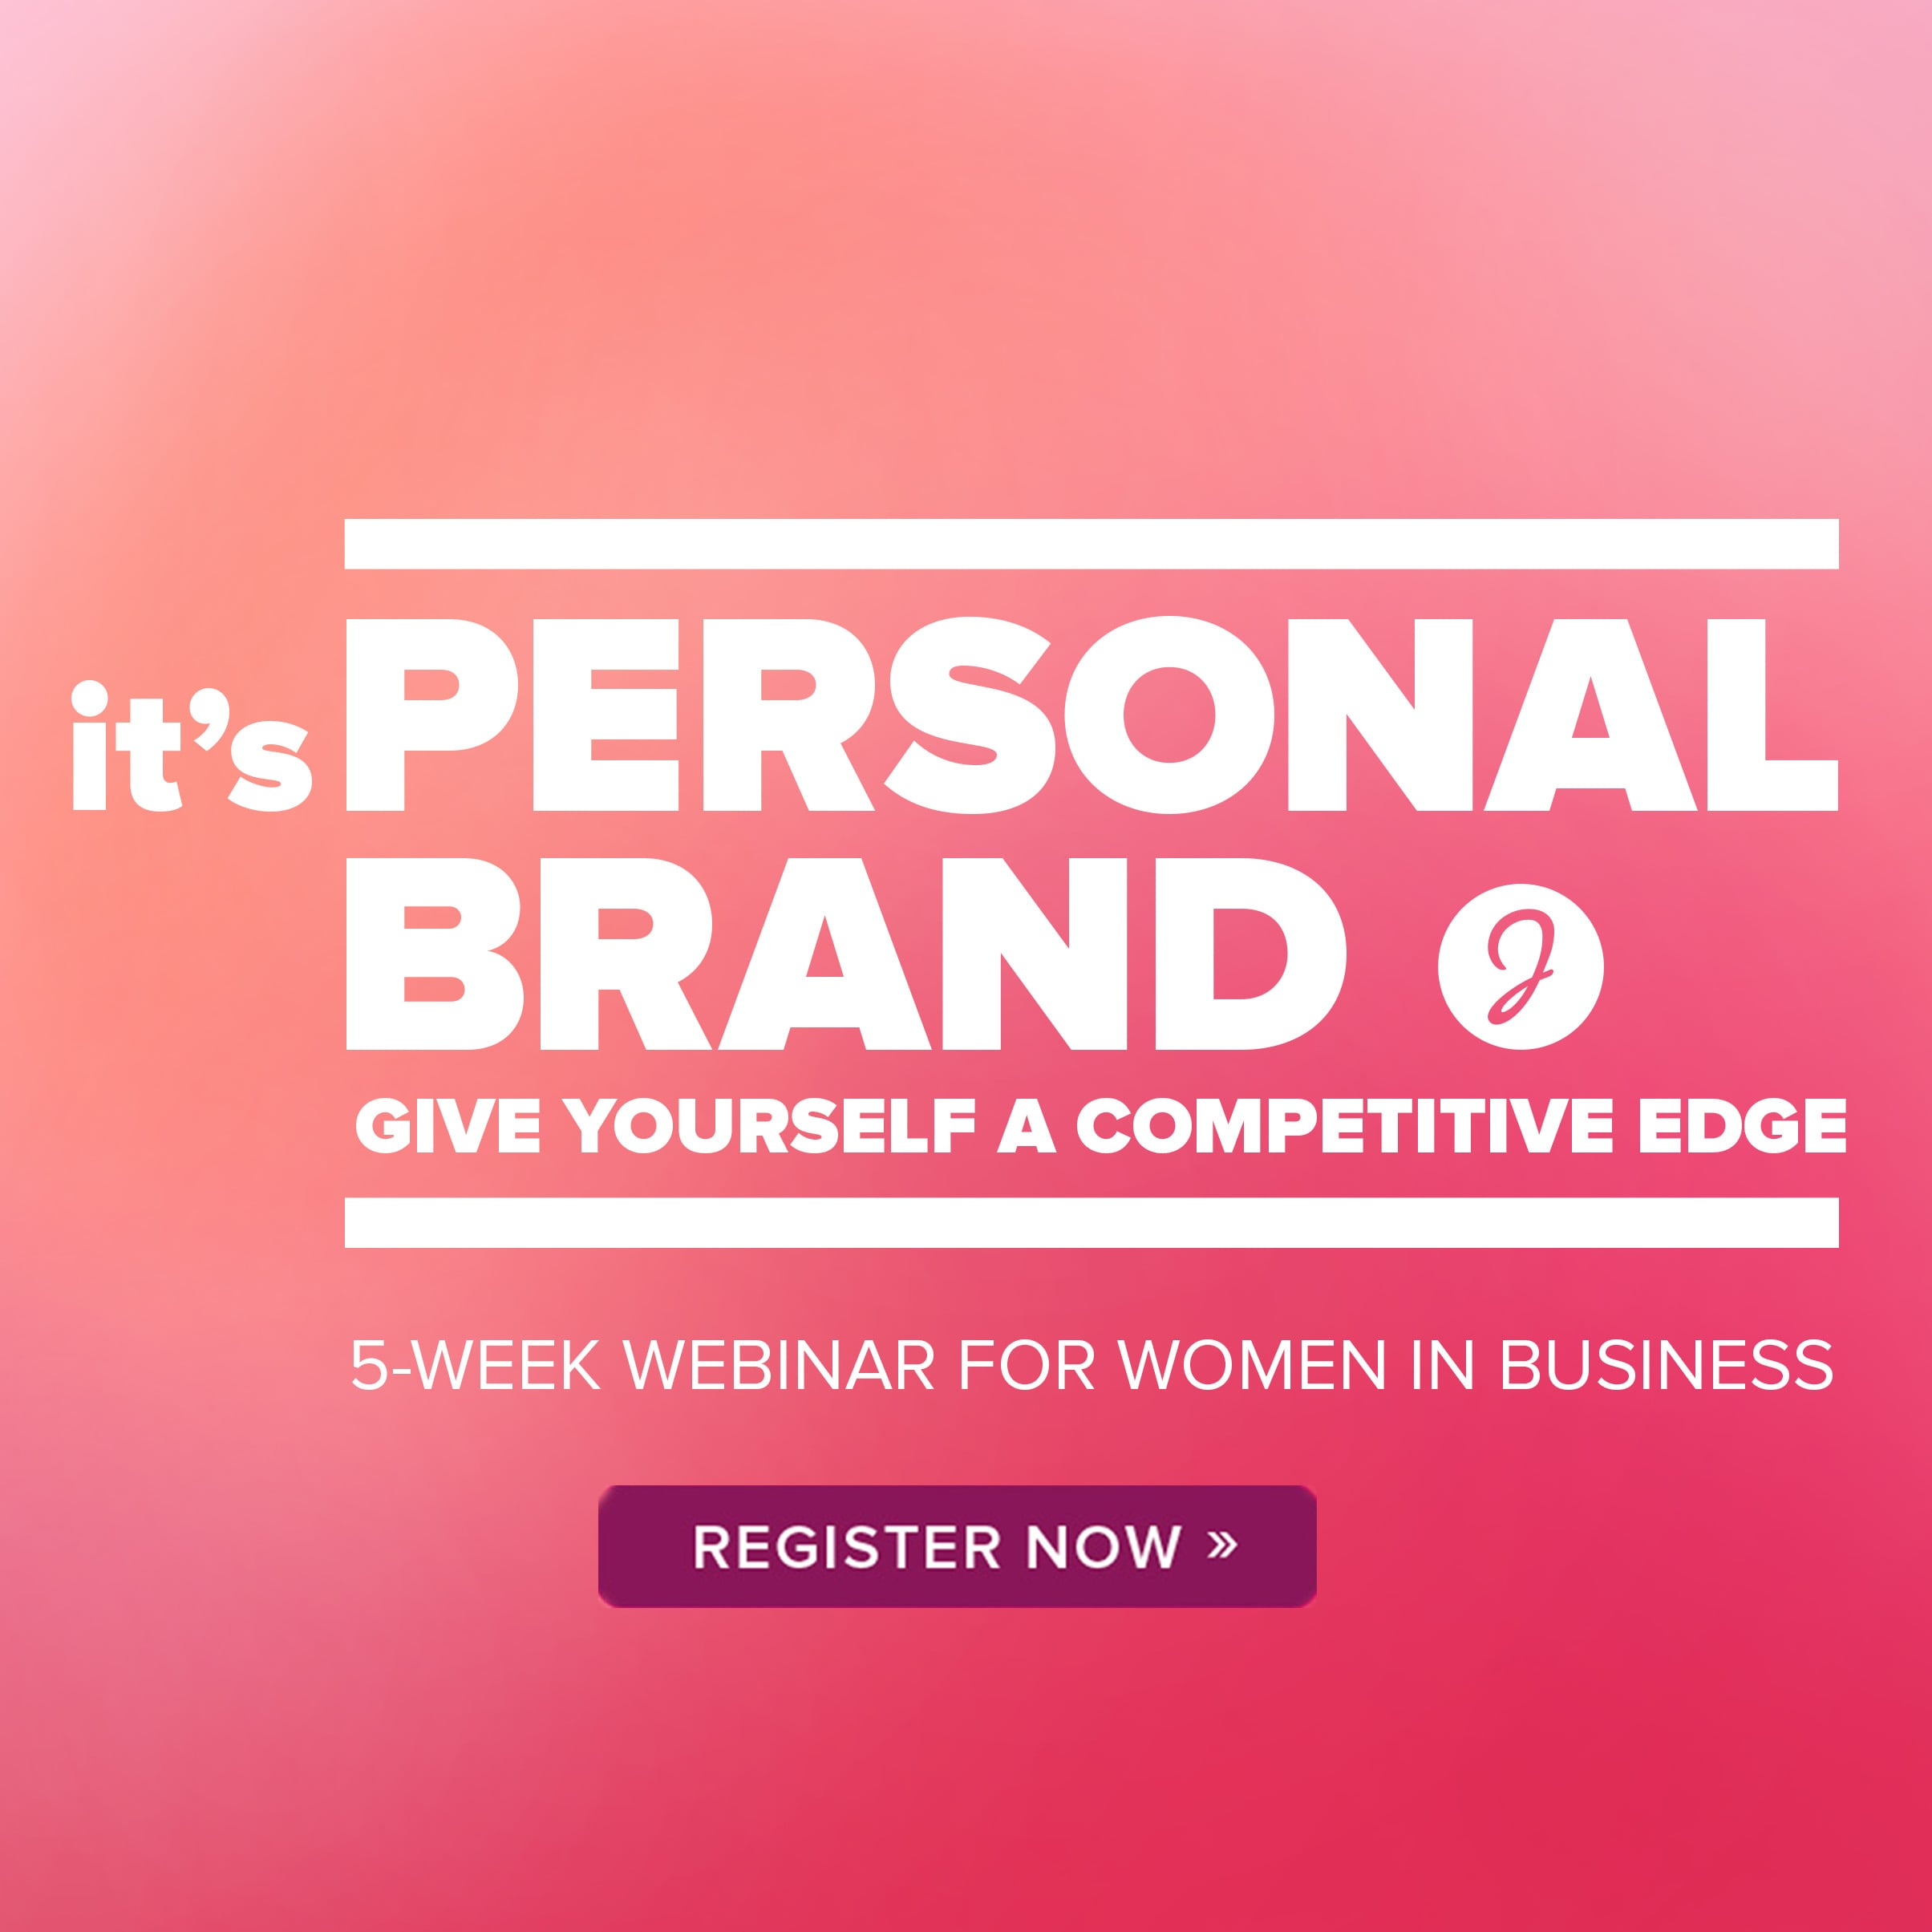 Struggle with self promotion? This 5-week brand strategy webinar helps women become their own best brand manager.  Learn more here.